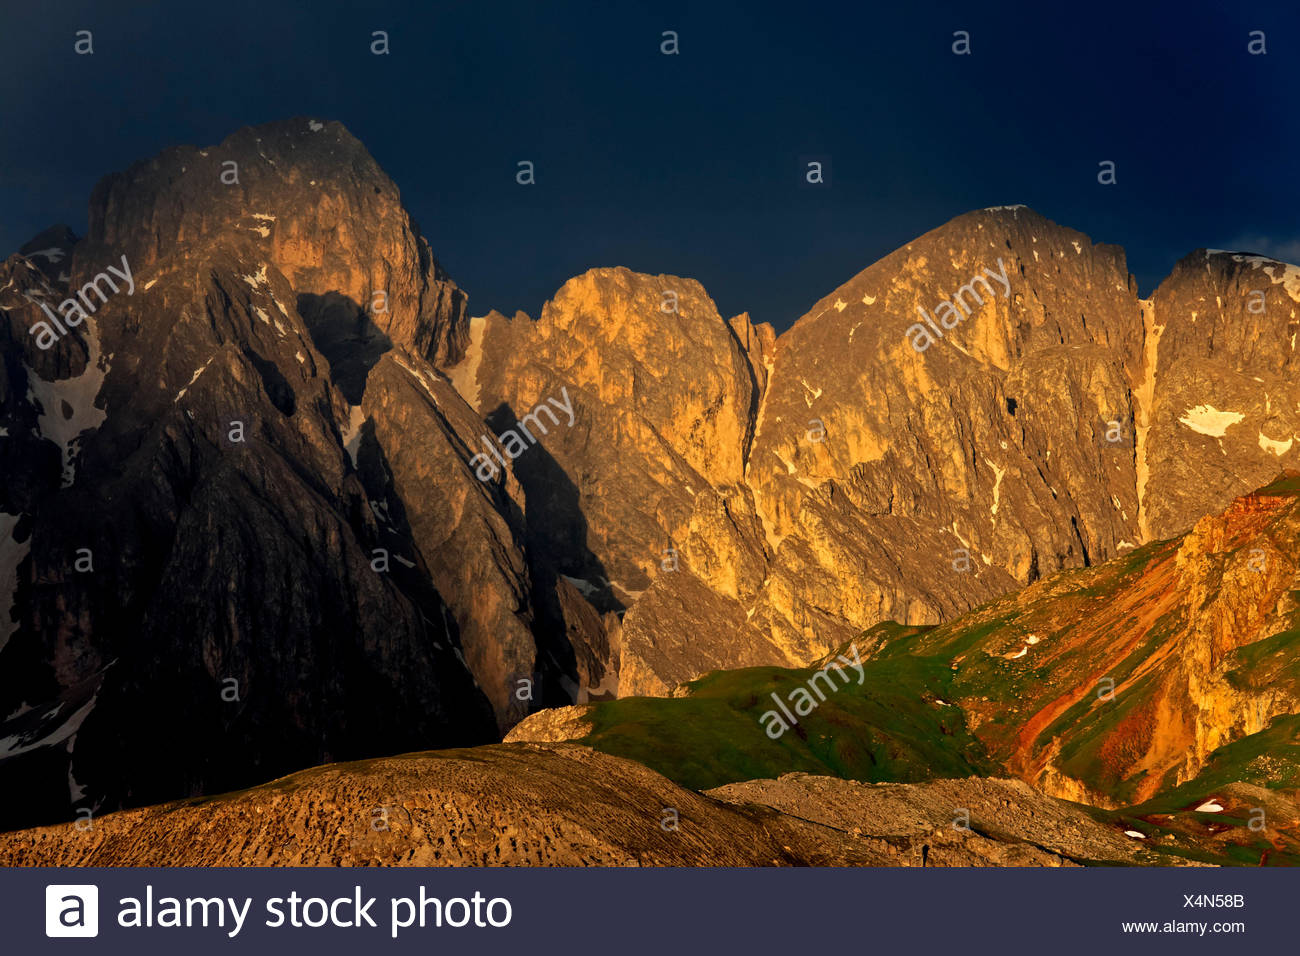 Italy, region Trentino South Tirol, province Bolzano, the Dolomites, to Schlern, thunderstorm about the Antermoiakogel, Teston de Lagol and pert electrolytic capacitor gel - Stock Image